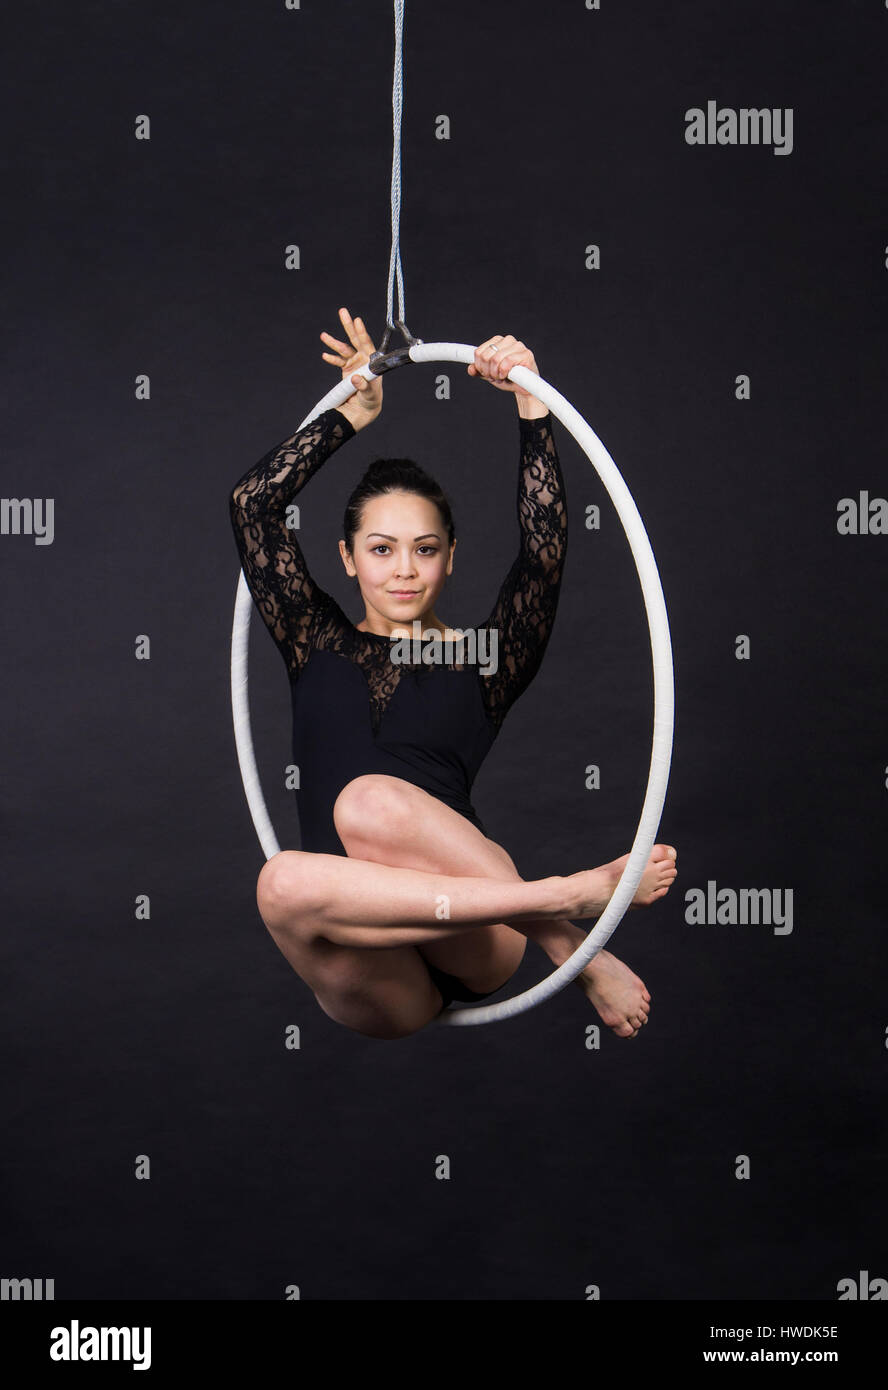 Aerial acrobat in the ring. A young girl performs the acrobatic elements in the air ring. Studio shooting performances - Stock Image